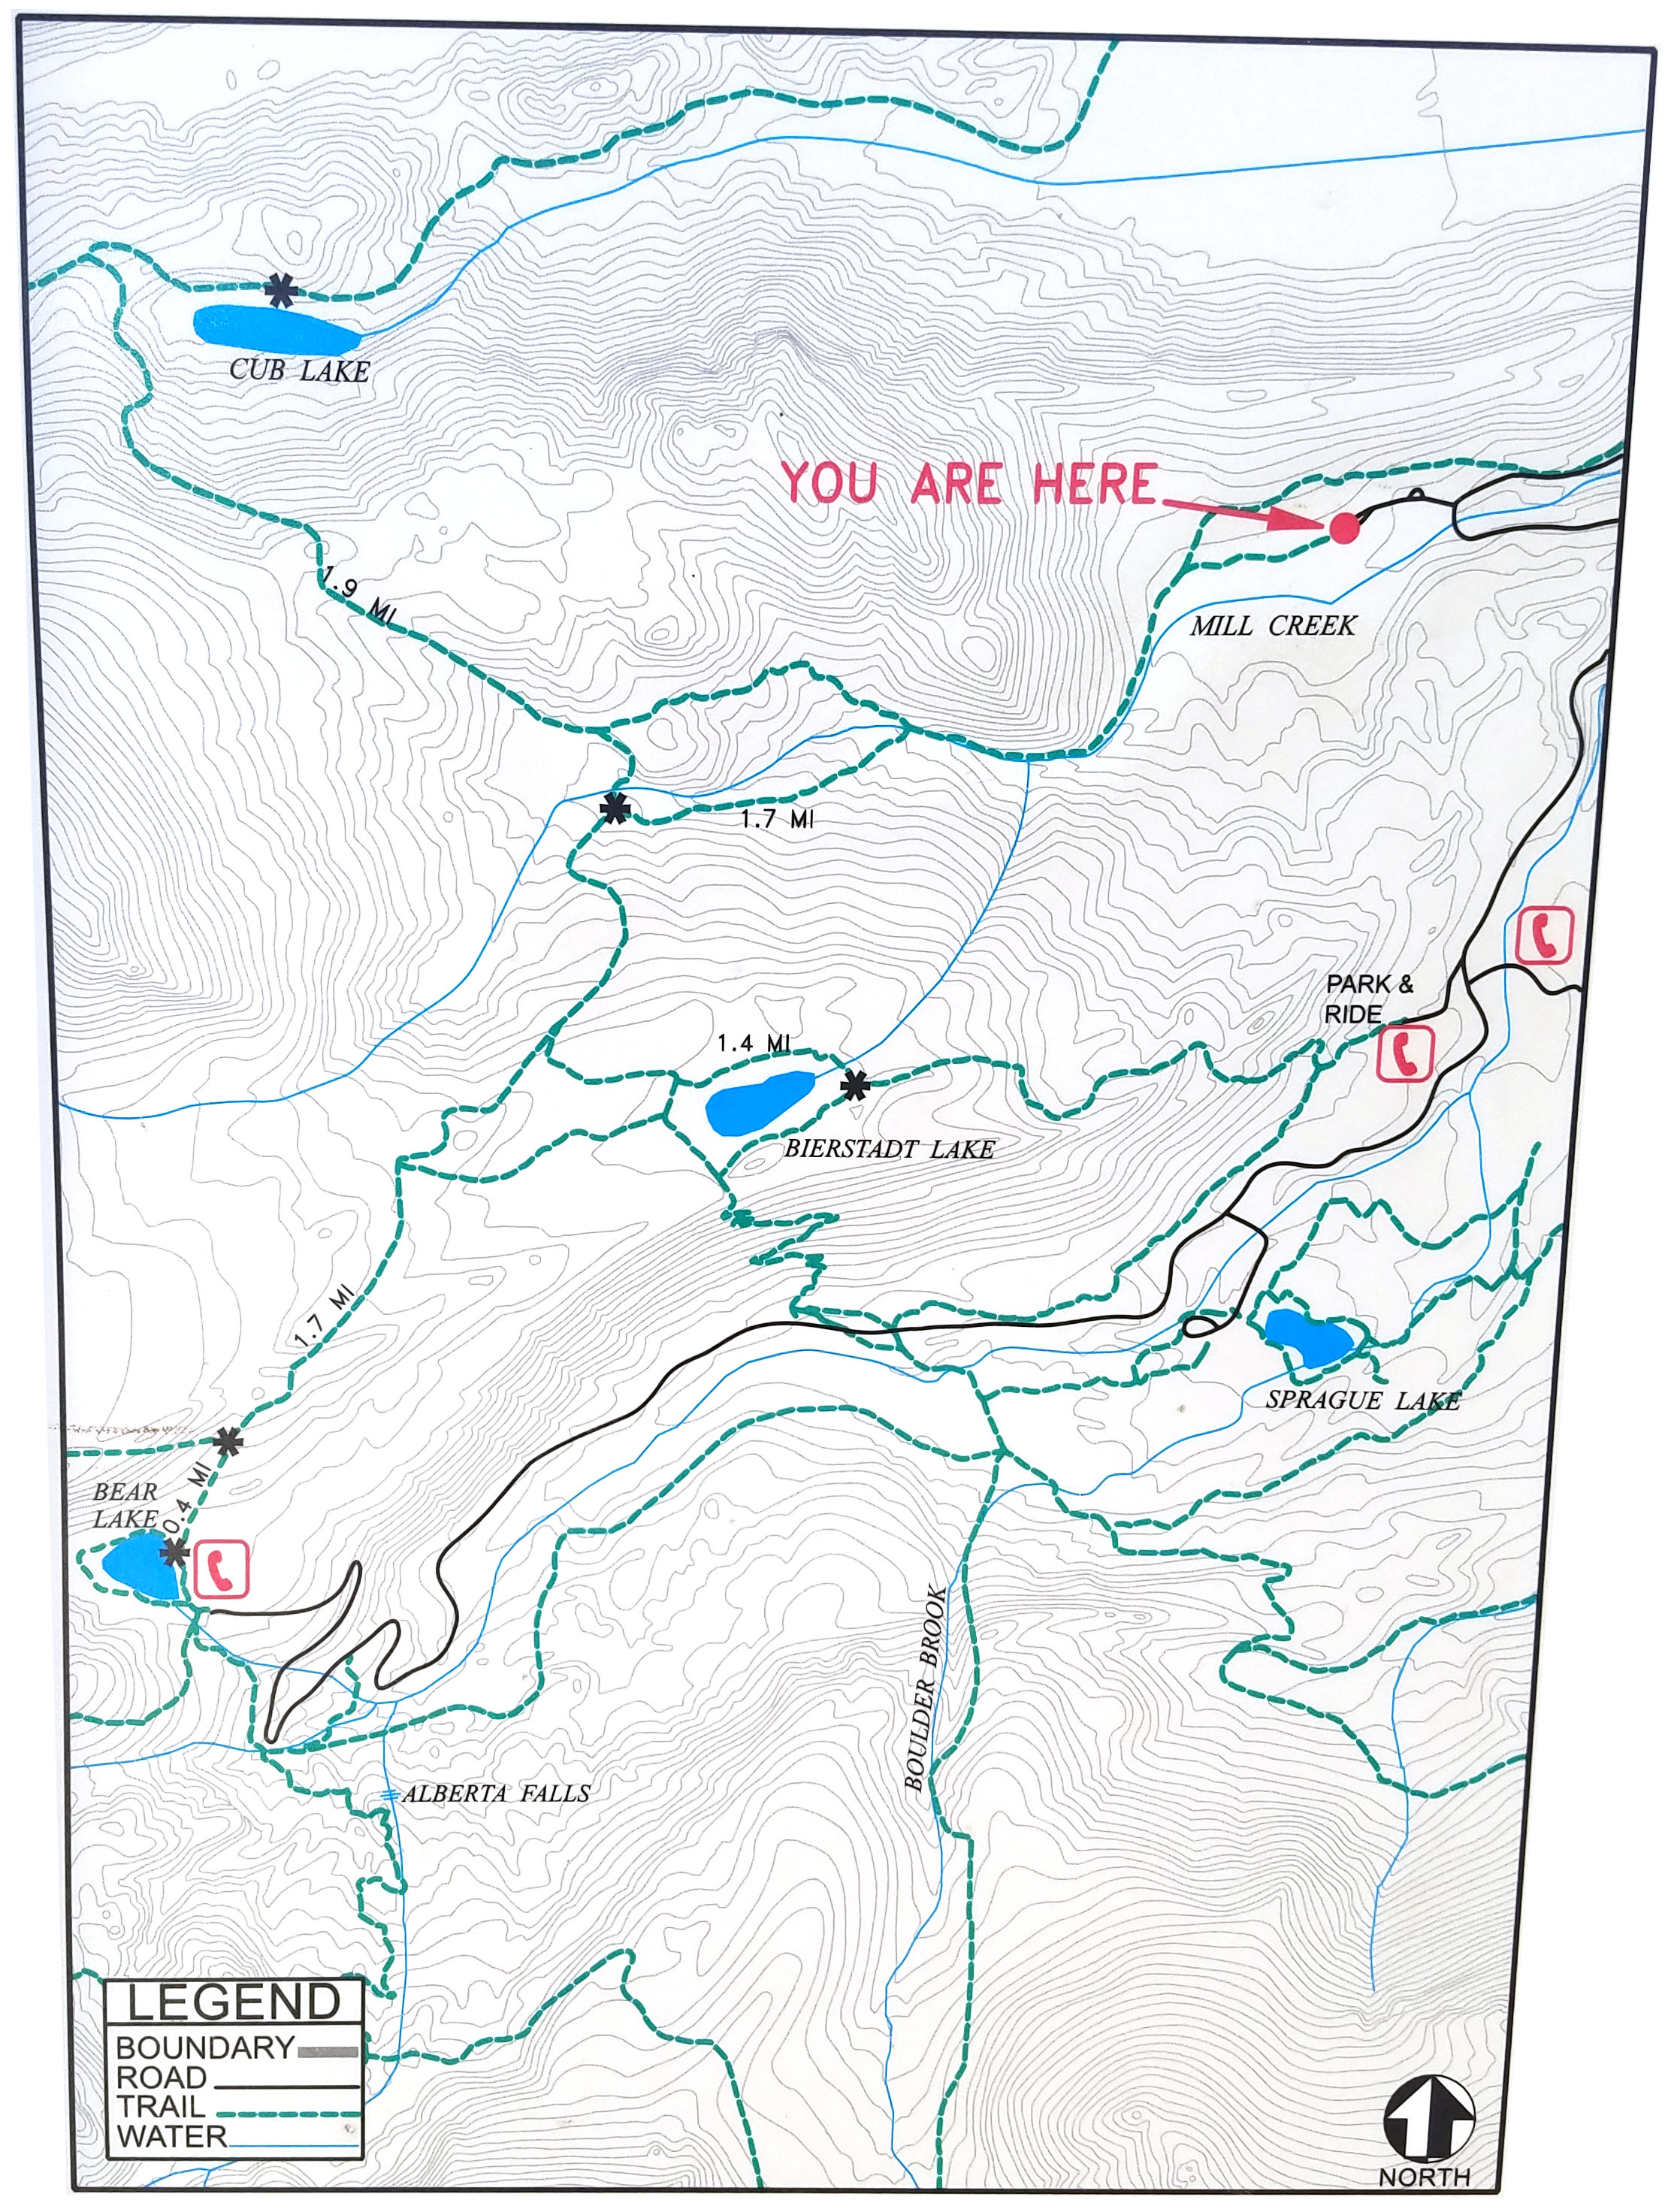 Rocky Mountain Maps | NPMaps.com - just free maps, period.